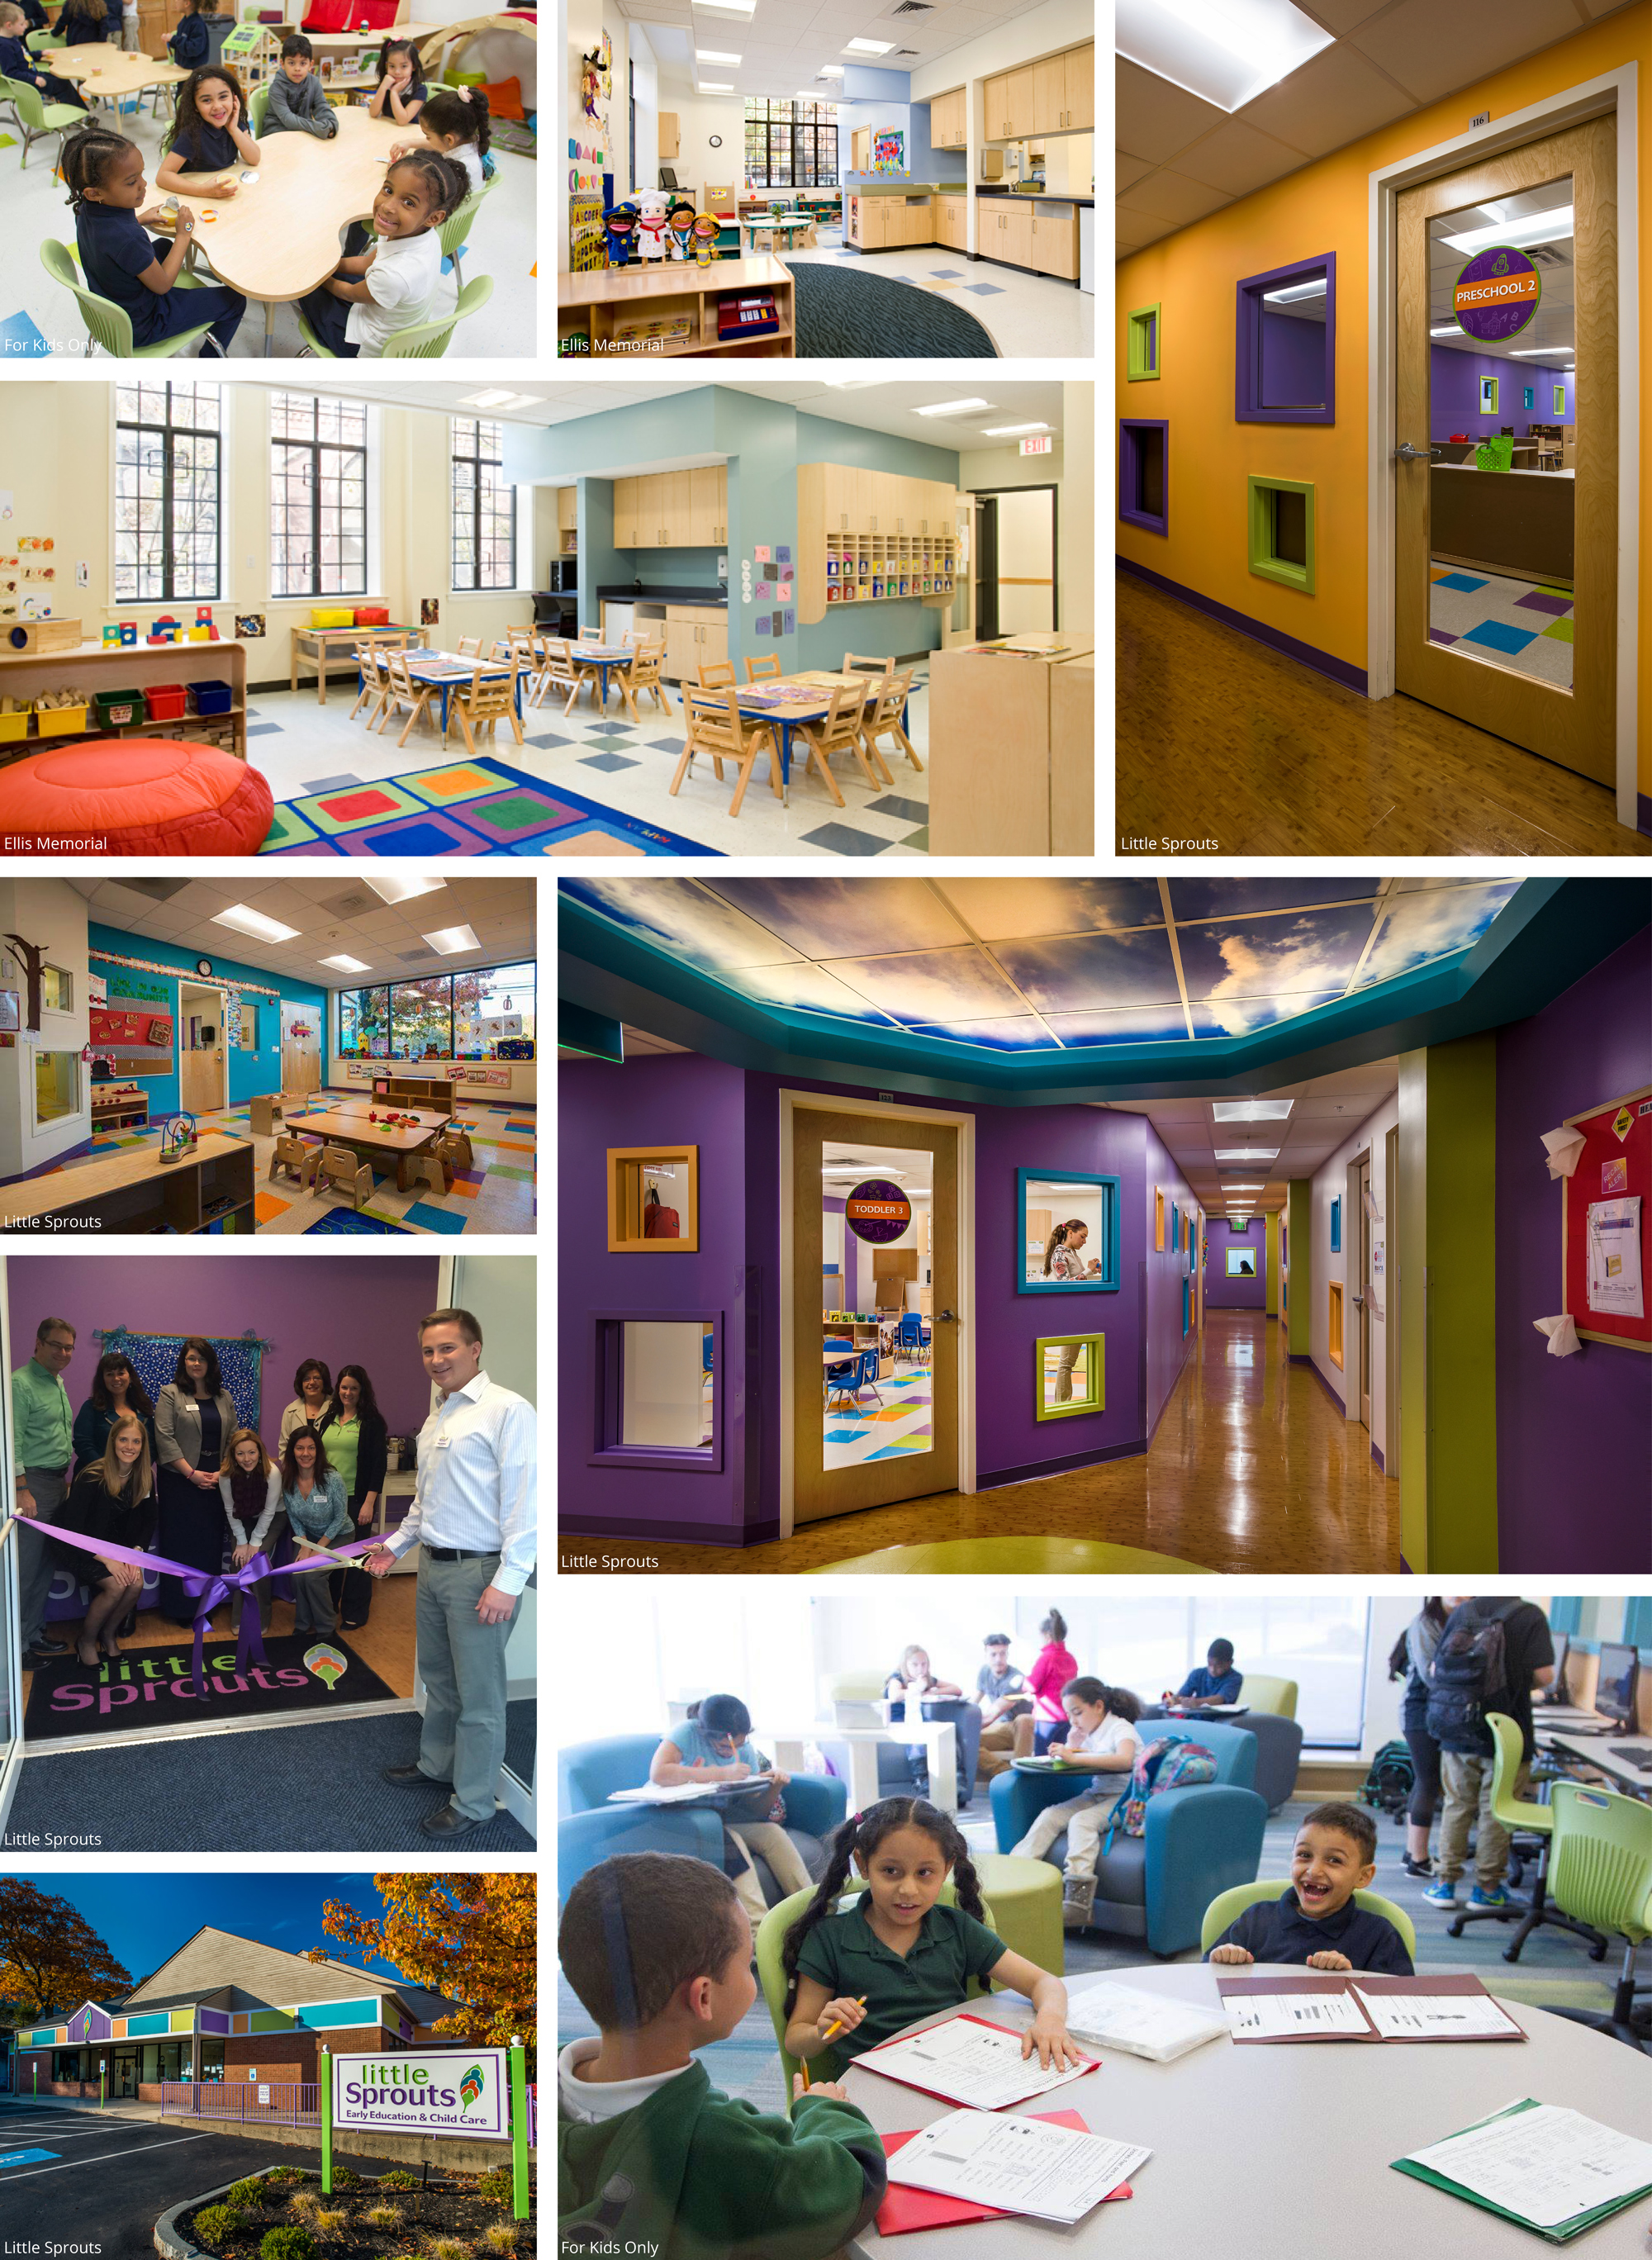 ... AND ON ENABLING THEIR CAREGIVERS AND TEACHERS TO PROVIDE THEM THE BEST  CARE AND EDUCATION CLIENTS: LITTLE SPROUTS, ELLIS MEMORIAL, FOR KIDS ONLY